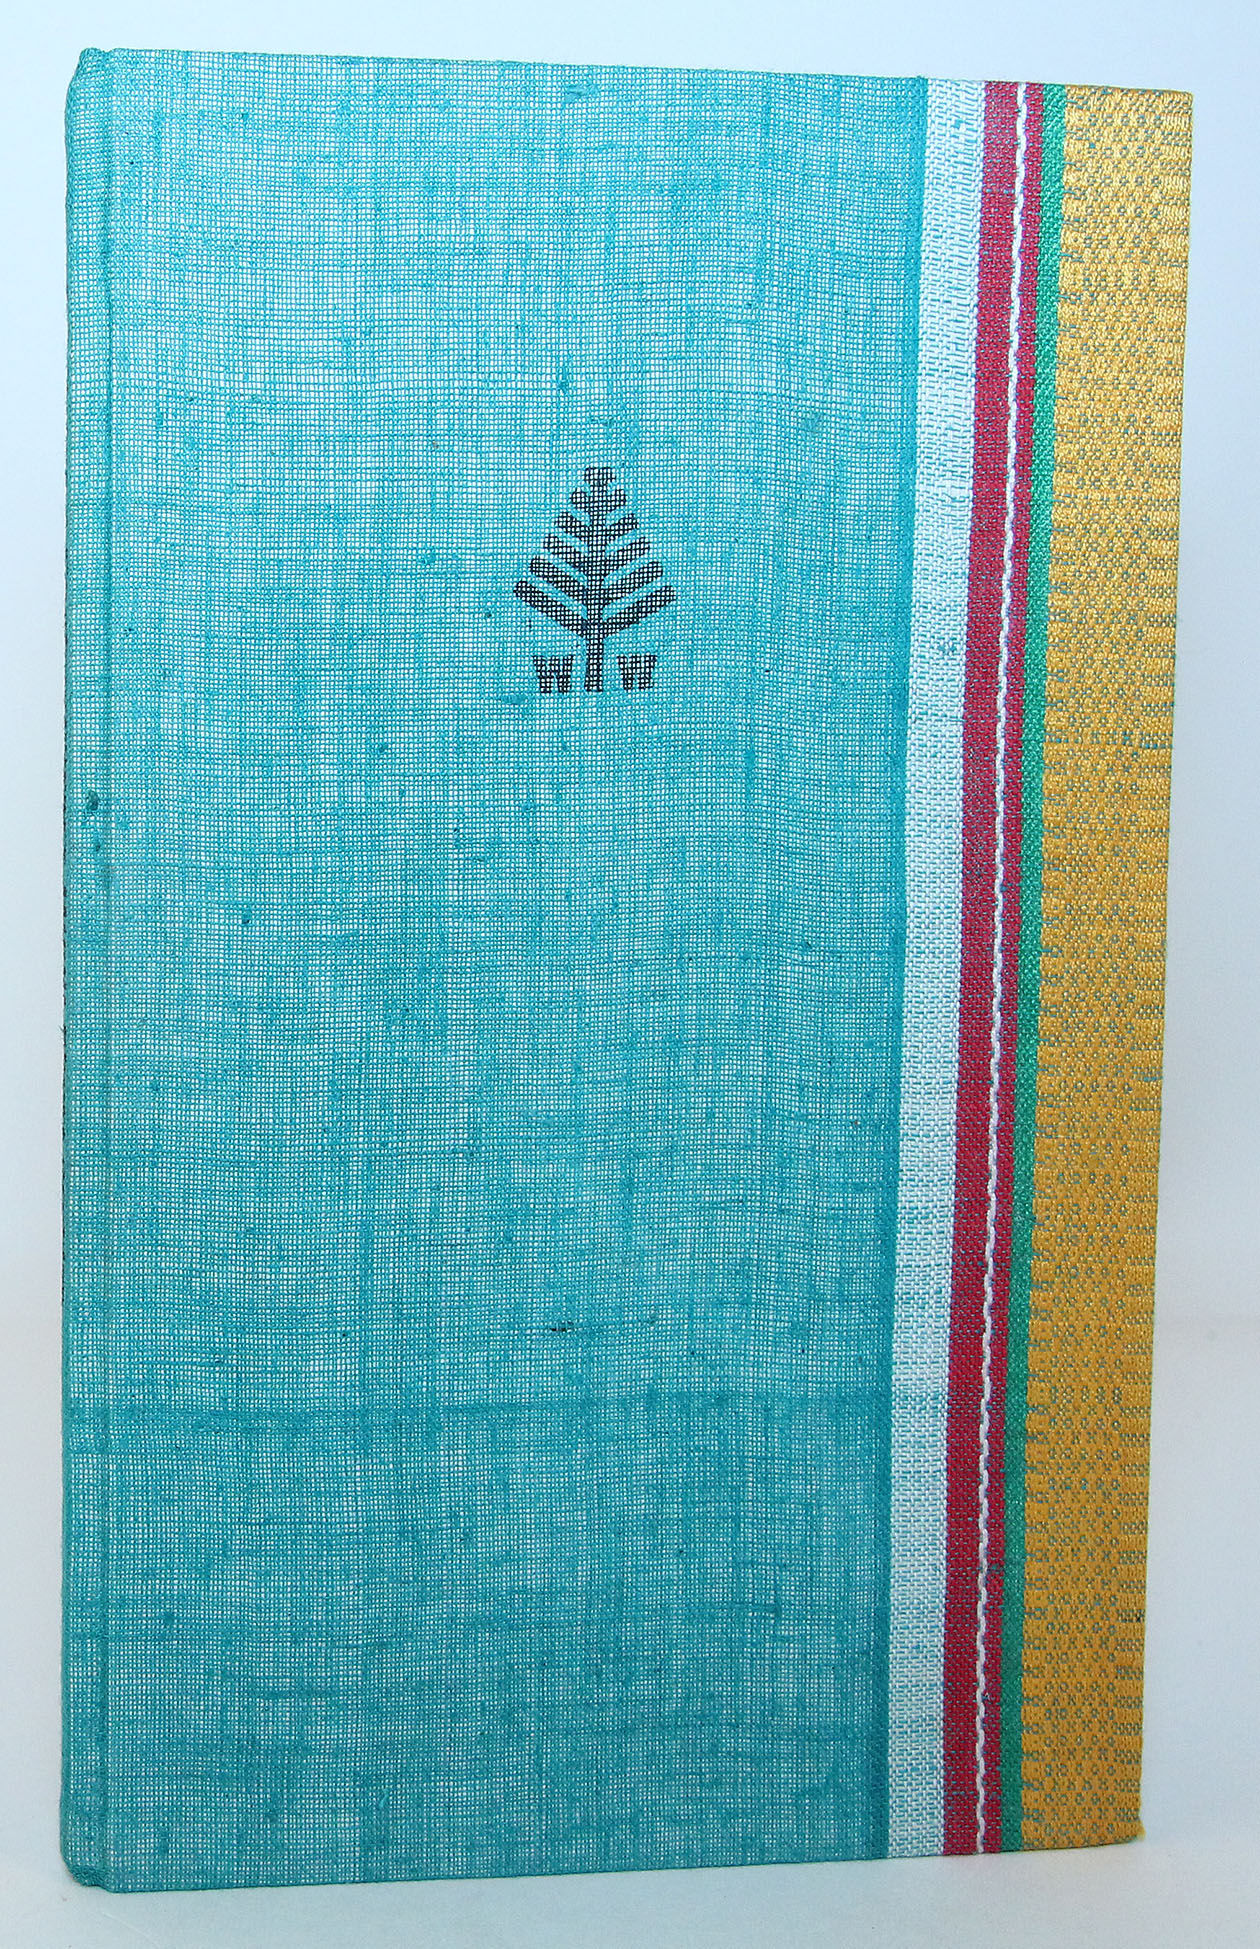 CONTEMPORARY HINDI SHORT STORIES  Selected and Translated by Jai Ratan by  Jai (editor) Ratan - First Edition - 1962 - from Flamingo Books and